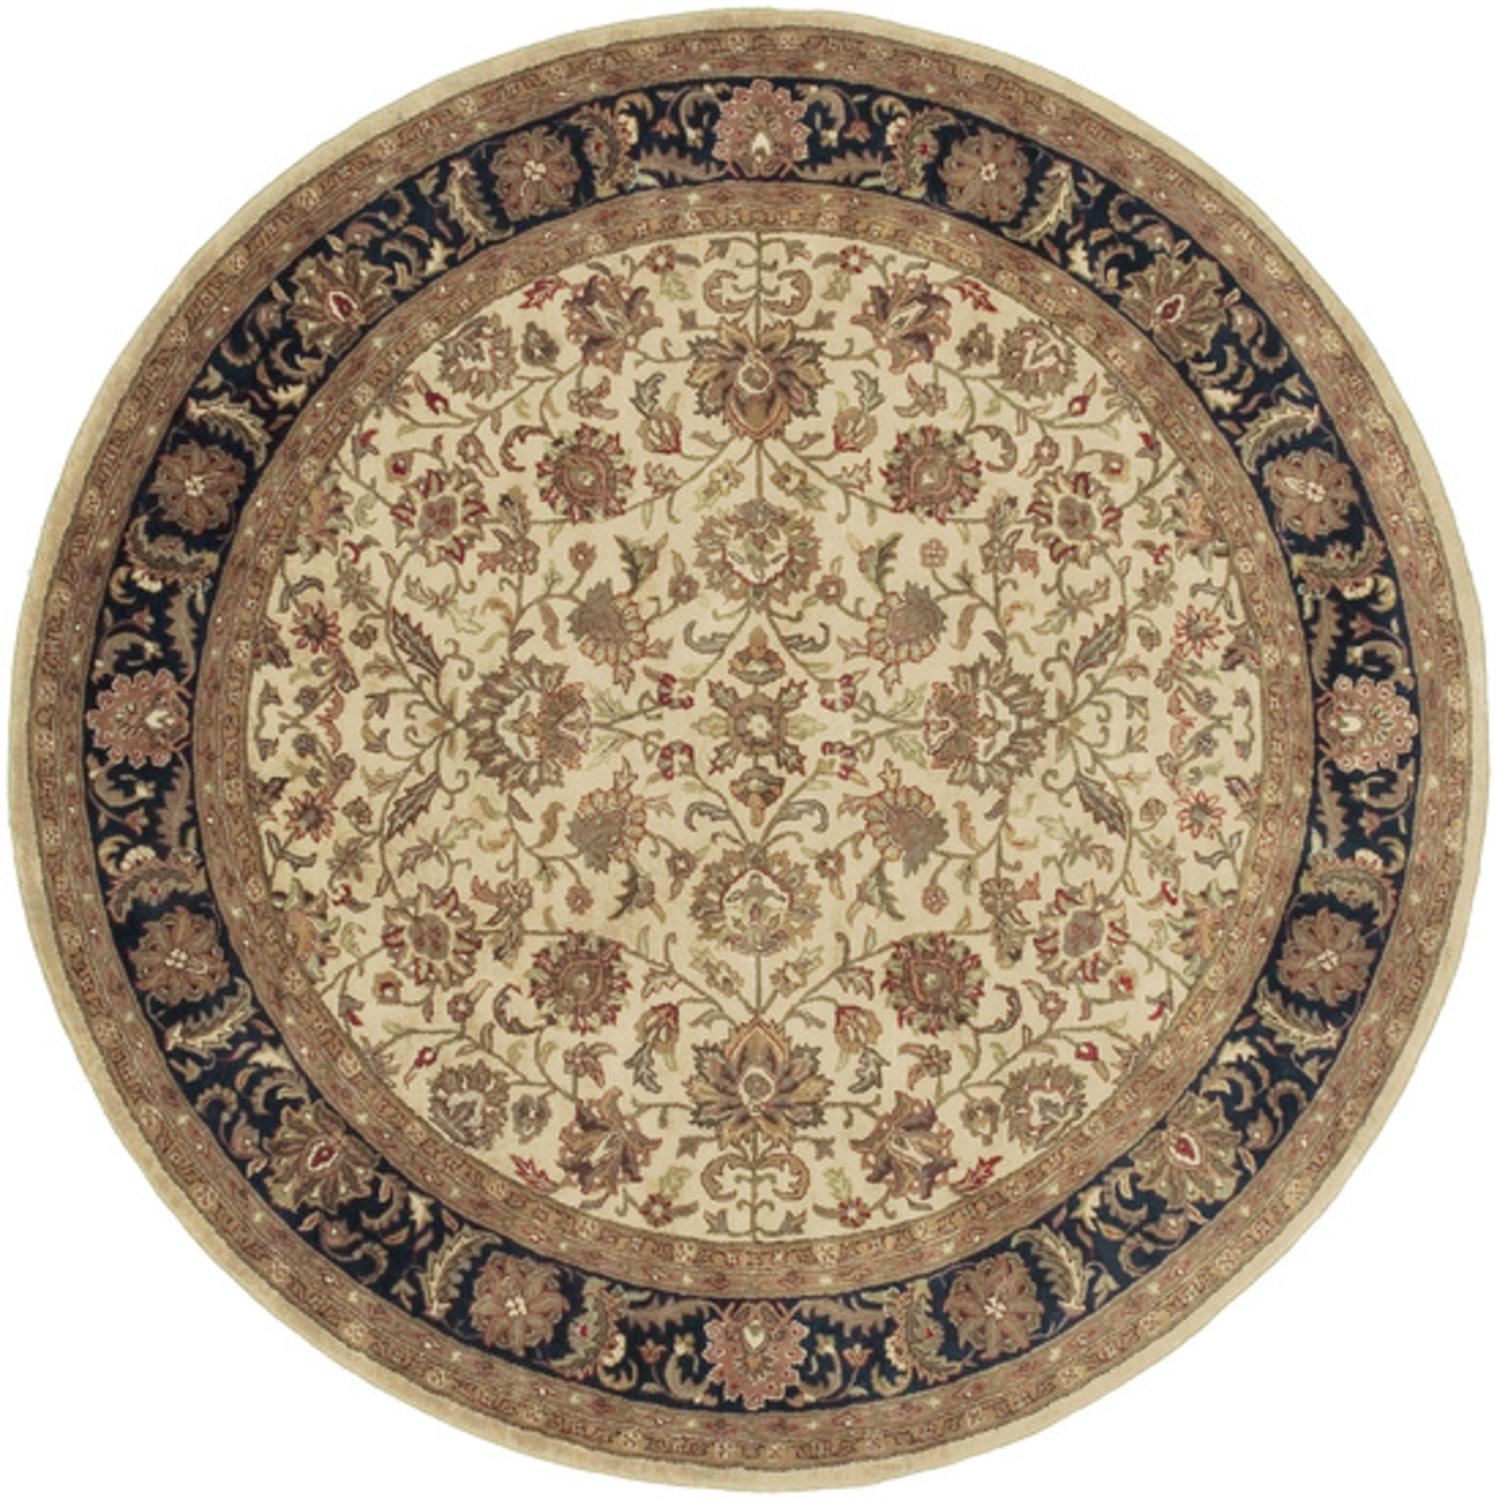 8' Floral Inspired Khaki Brown & Green Oriental-Style Round Wool Area Throw Rug